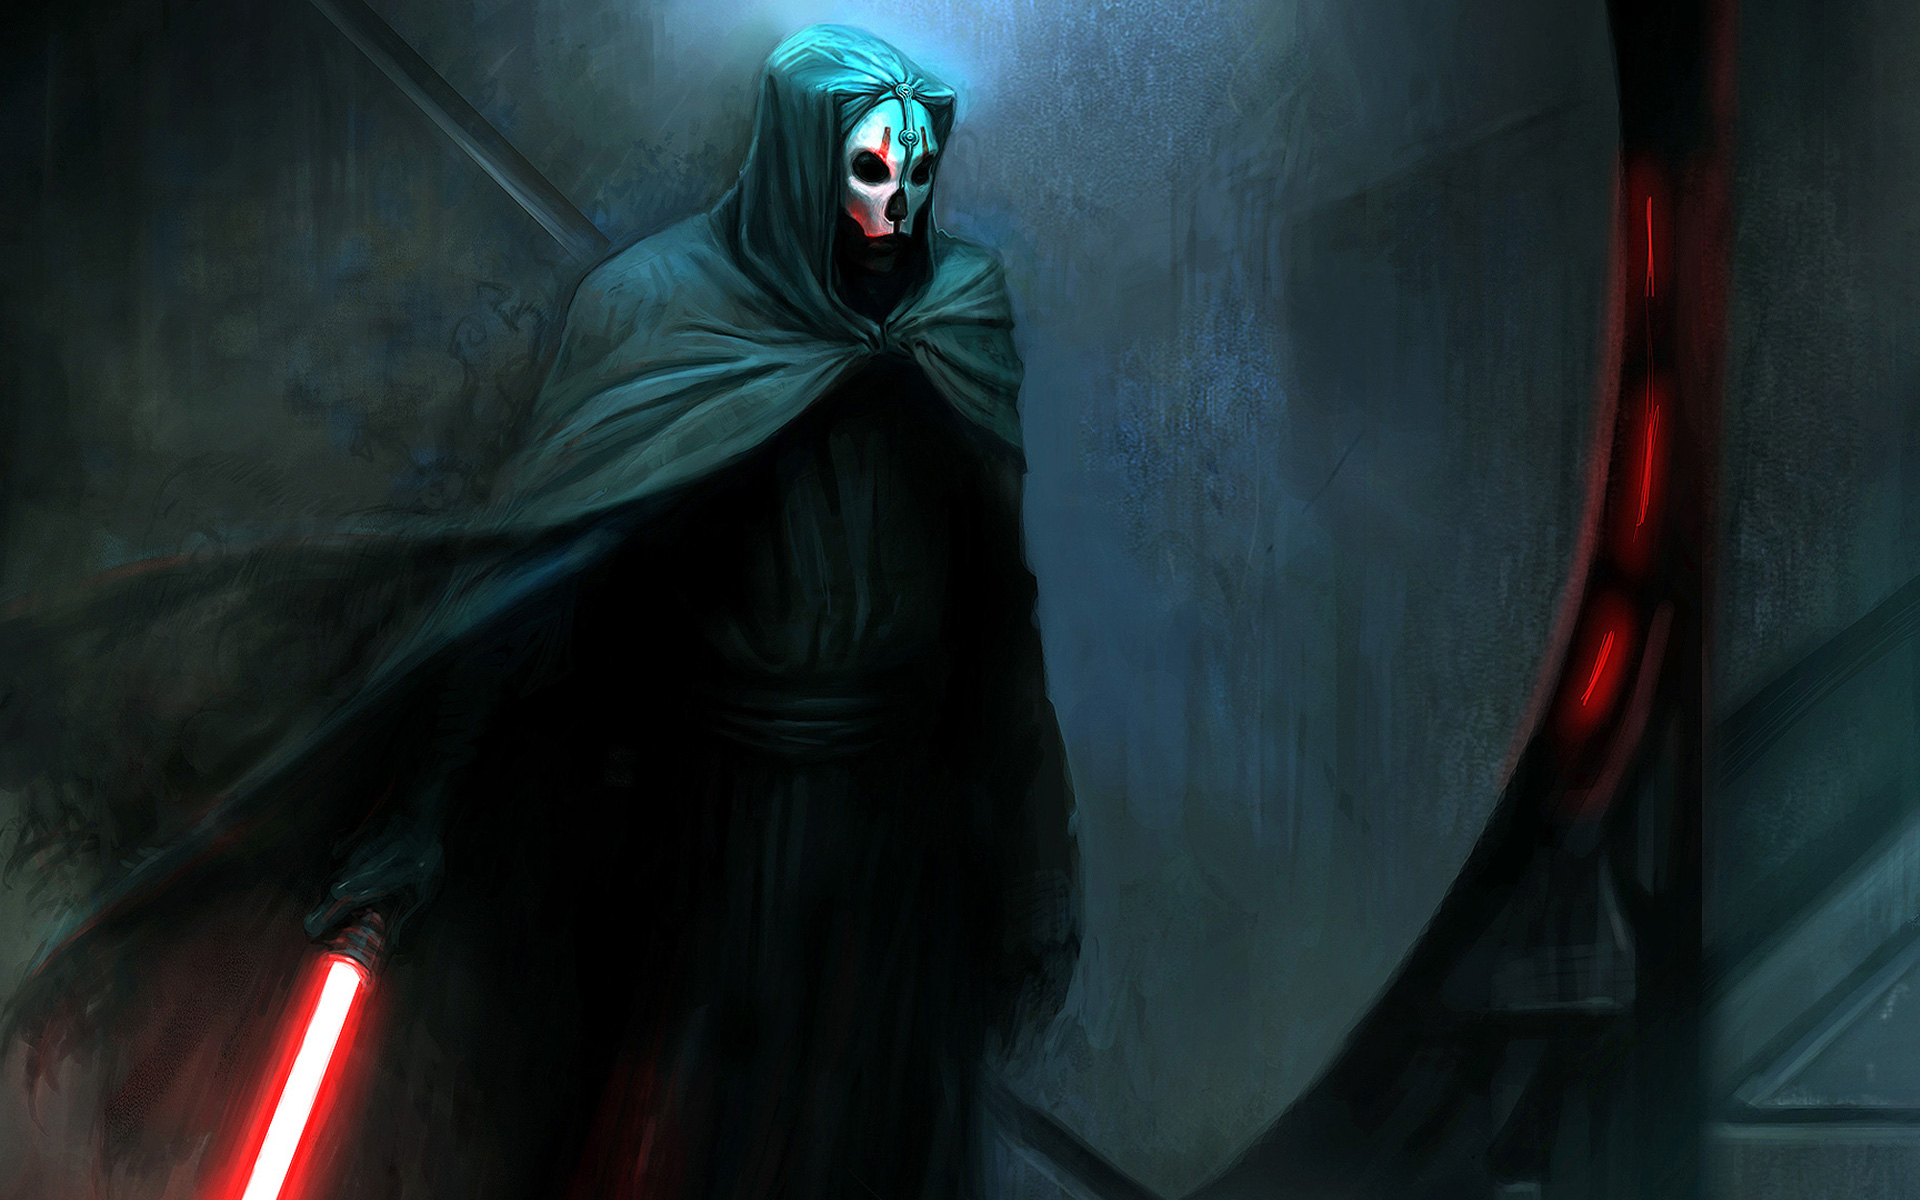 Star Wars: Knights of the Old Republic II � The Sith Lords Wallpaper in 1920x1200